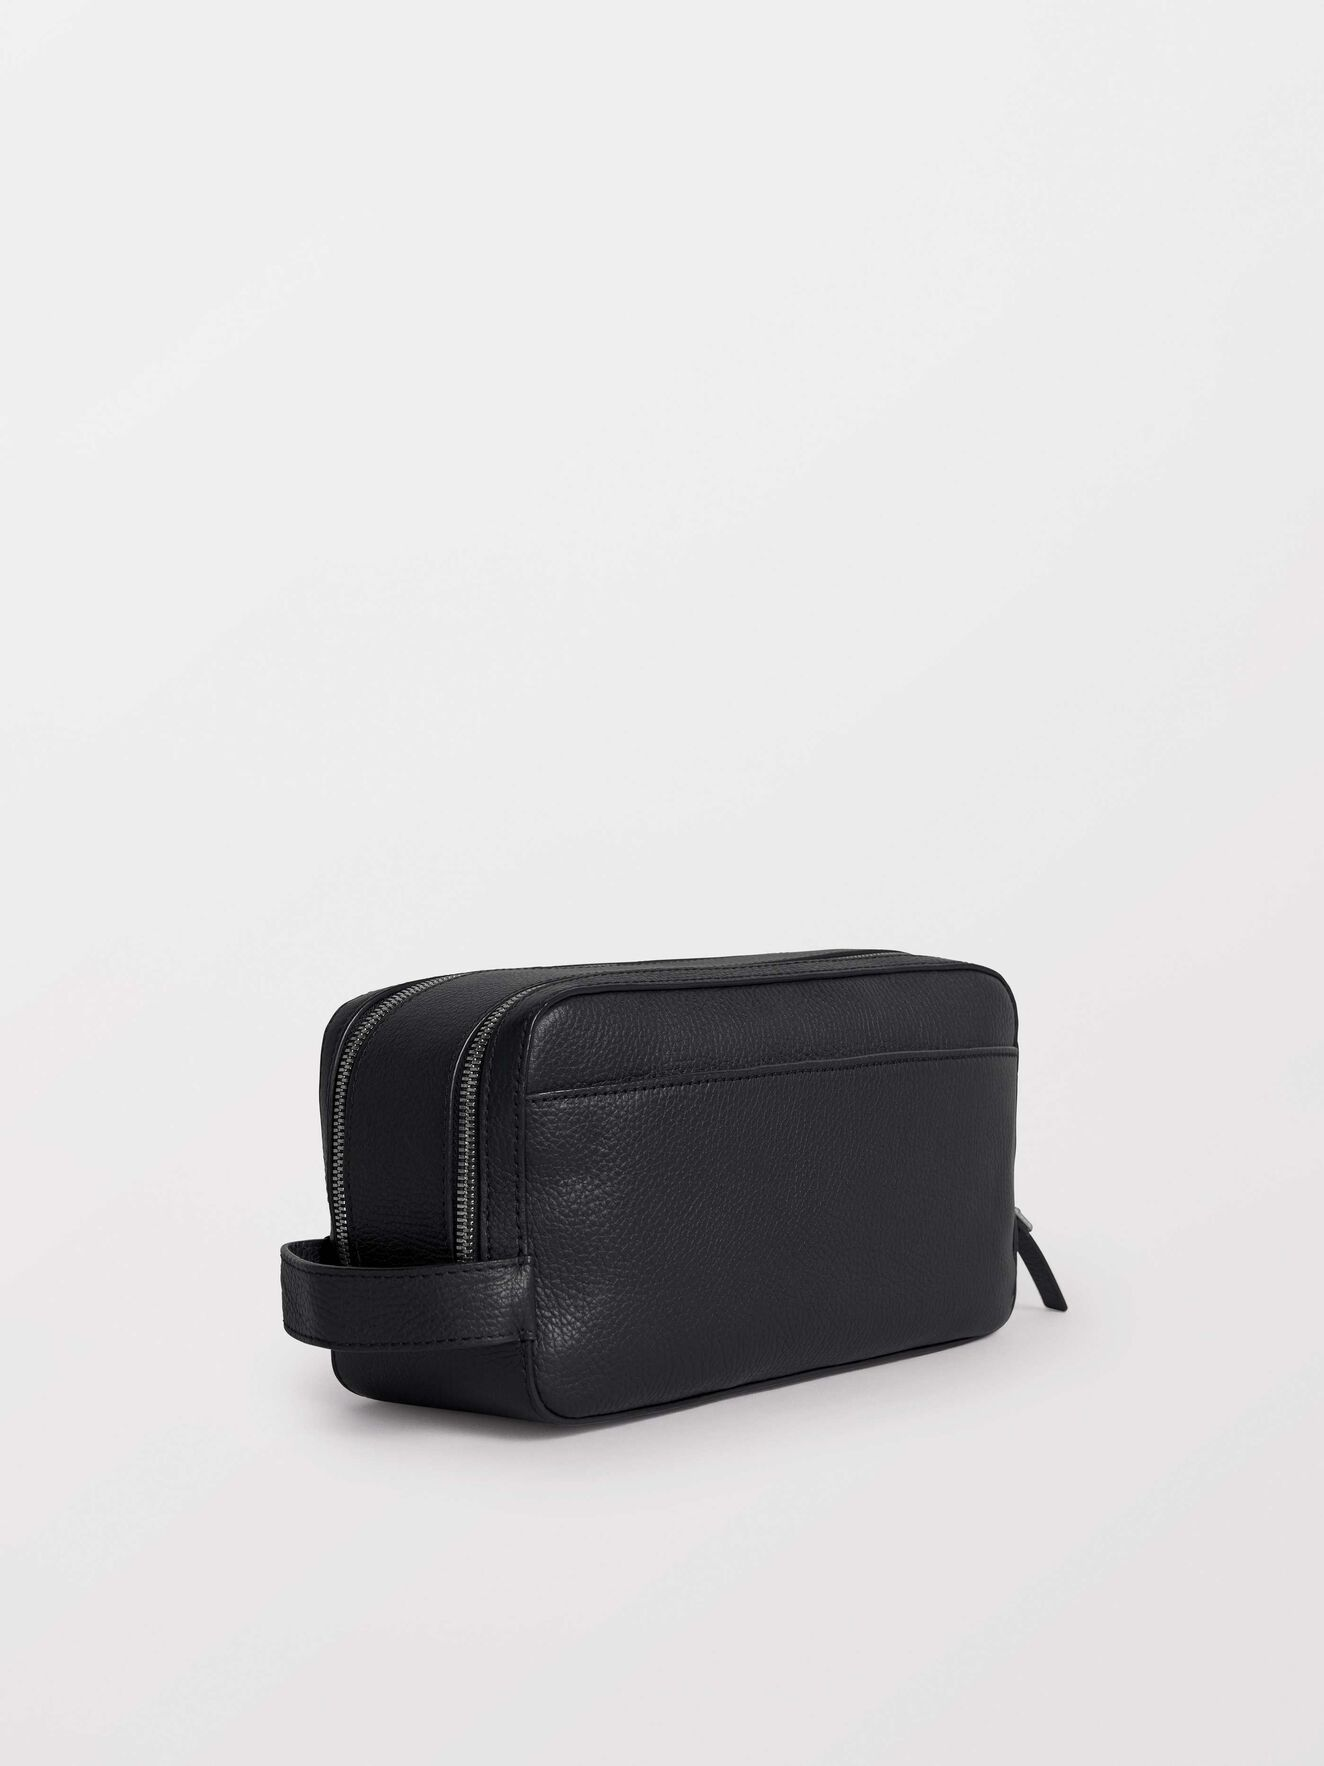 Waire Toiletry Bag in Black from Tiger of Sweden